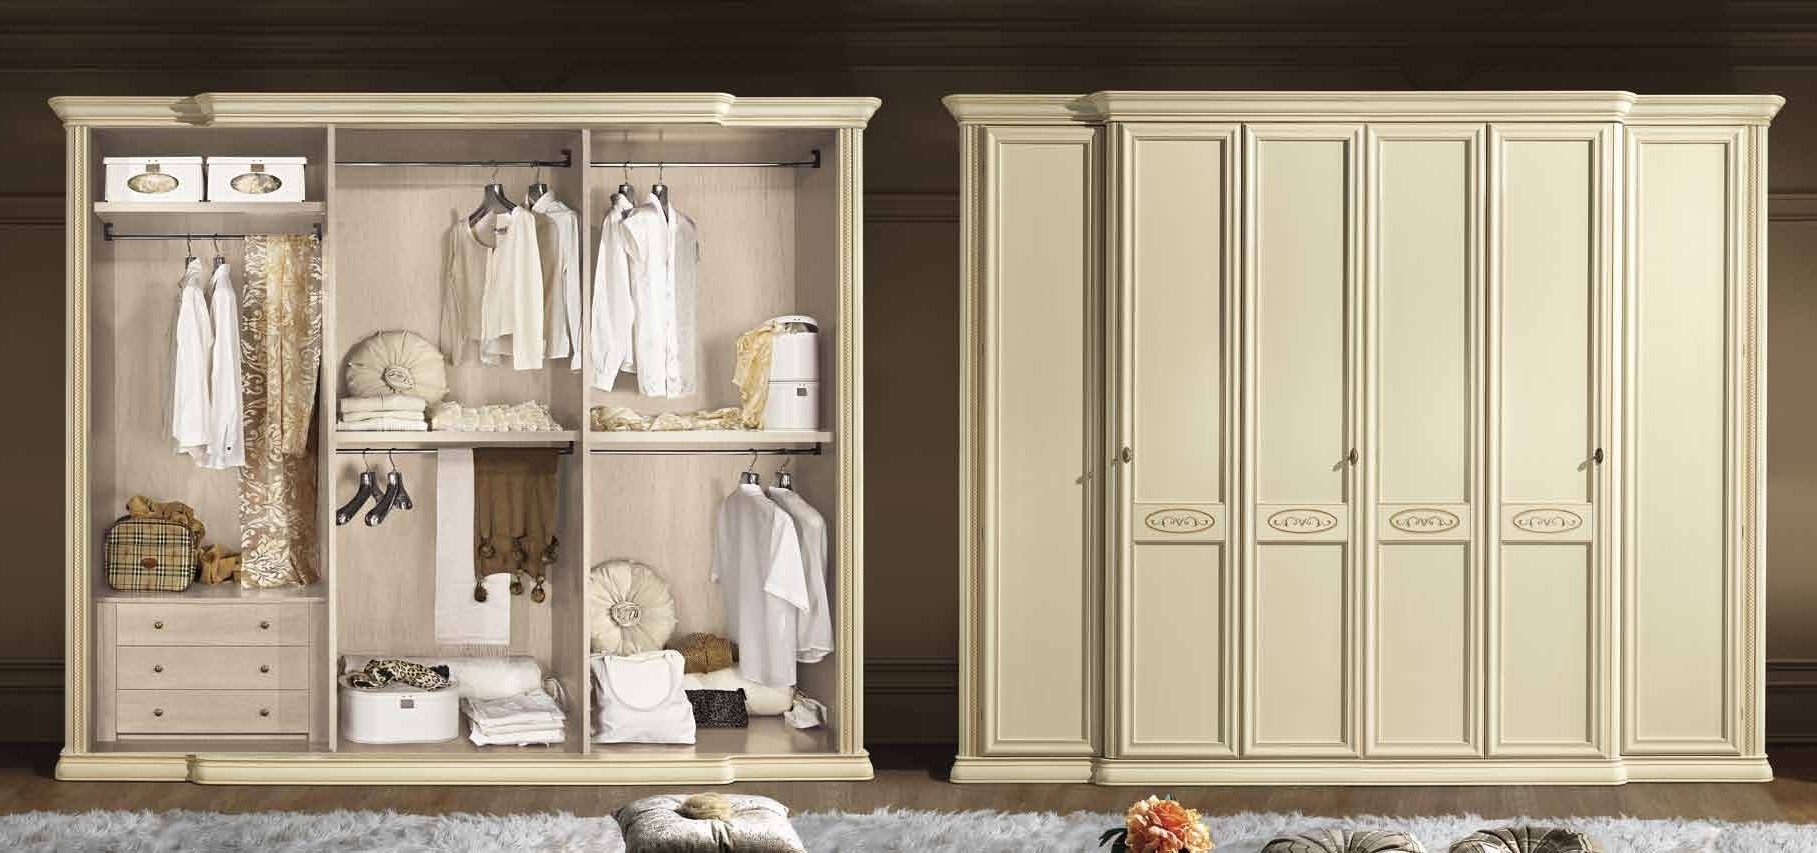 6 Door Wardrobe Bedroom Furniture (View 2 of 15)